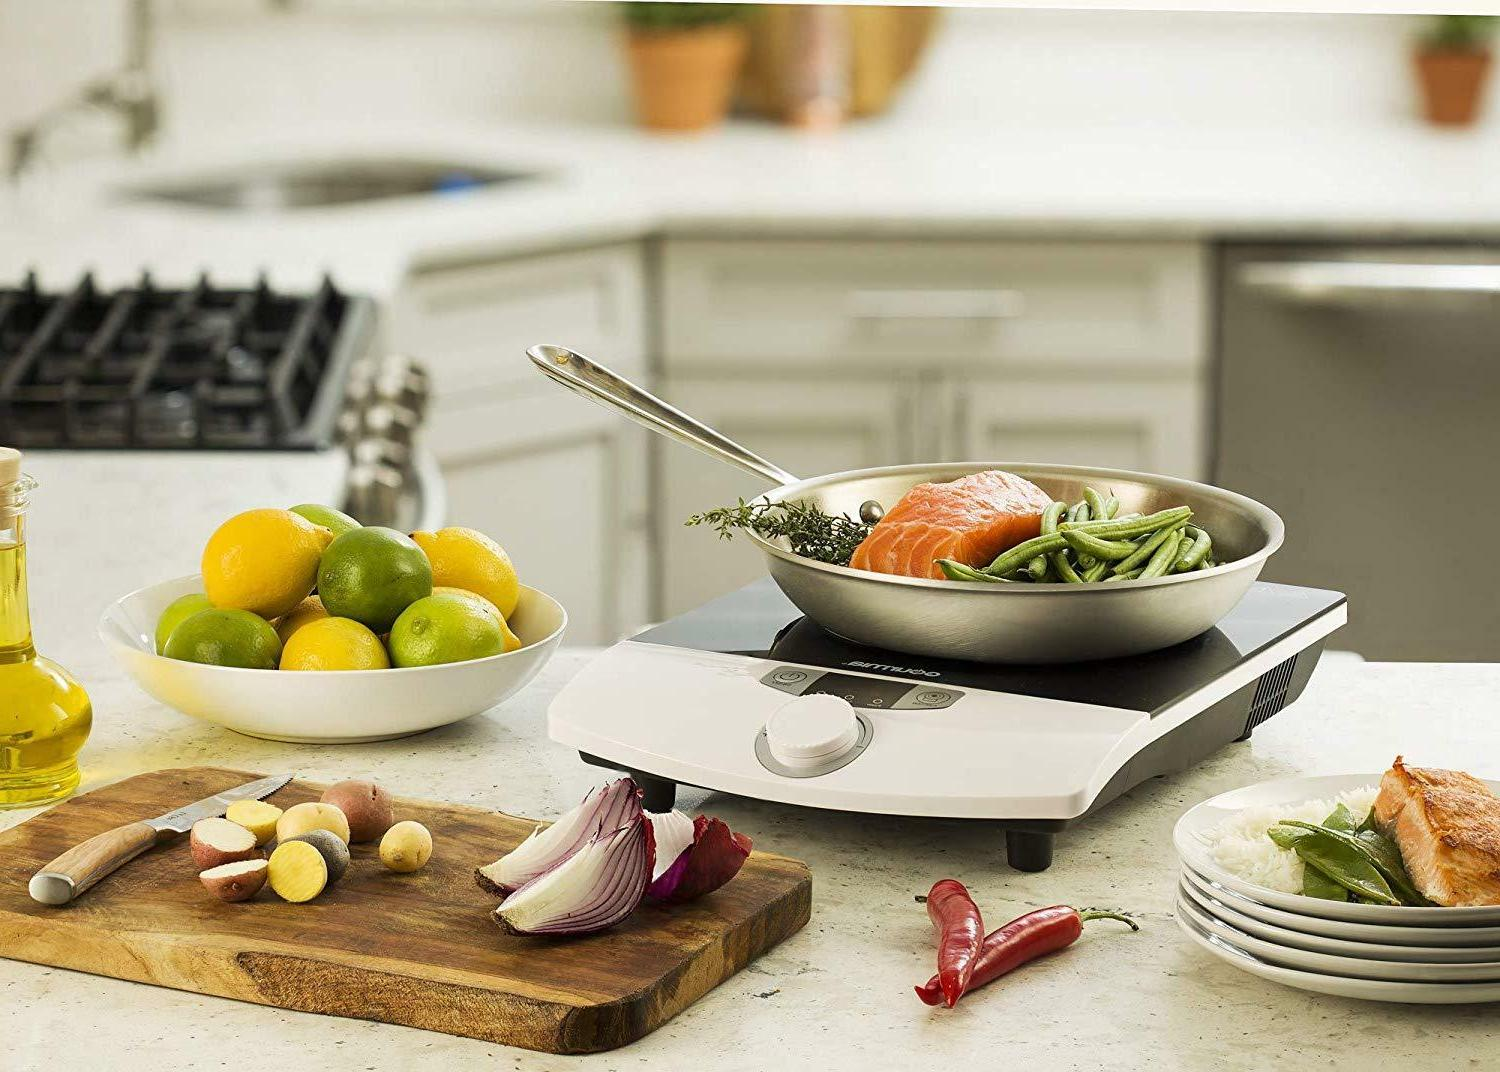 Hot Plate Multifunction Induction Cooker 8 Power